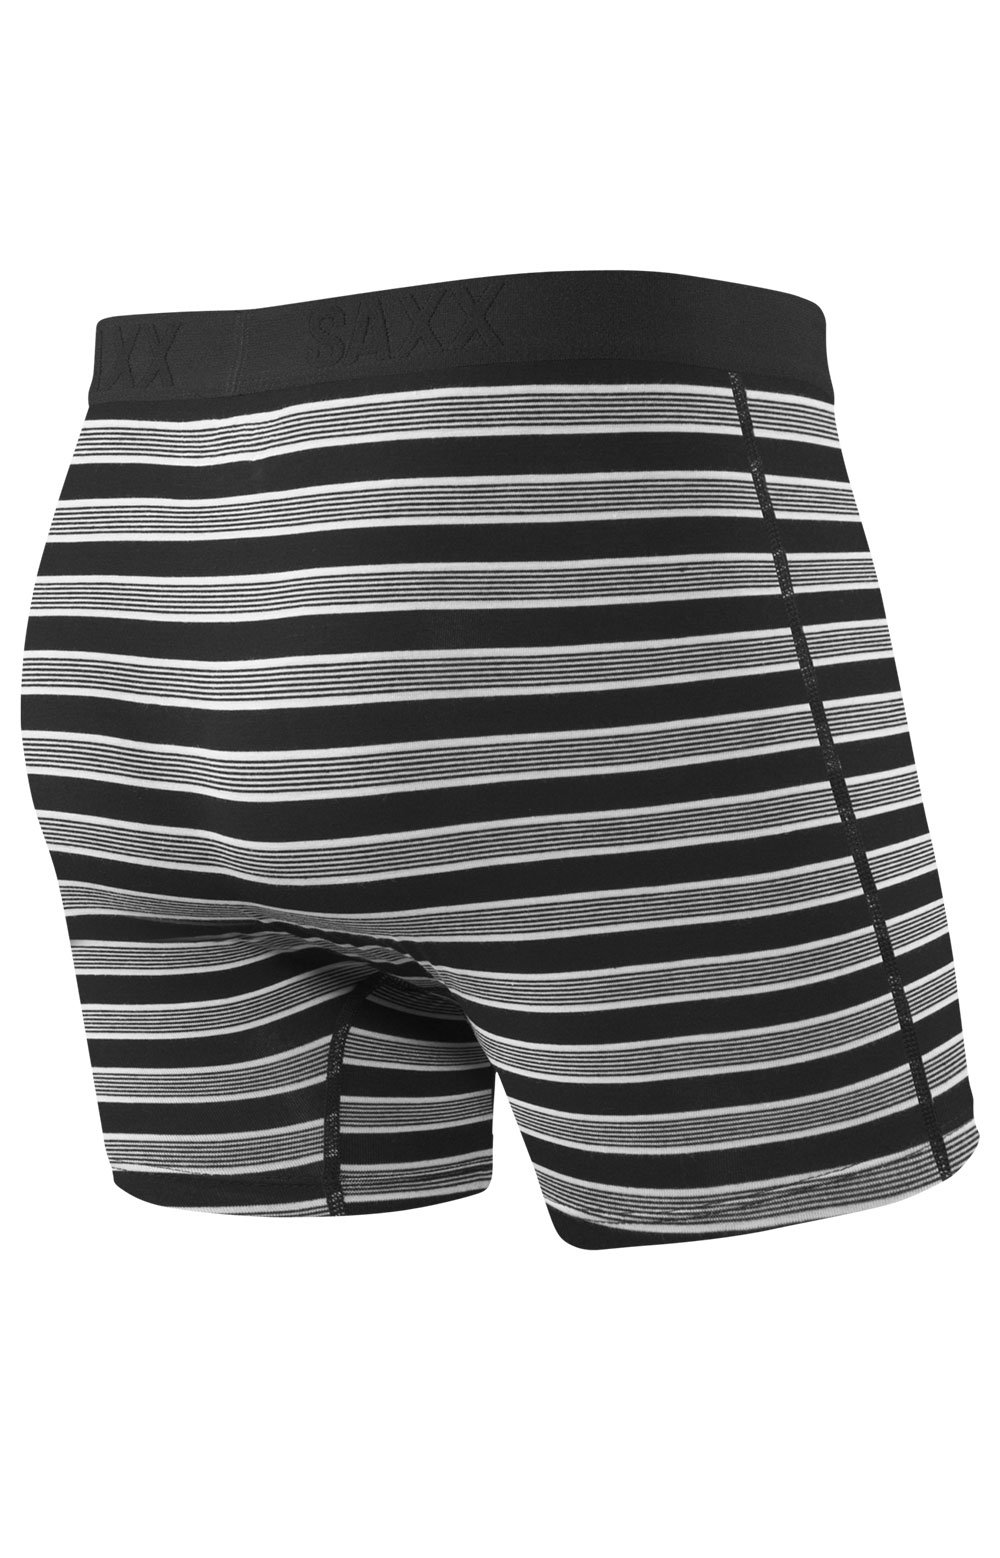 Ultra Boxer Brief Fly - Black Crew Stripe 3